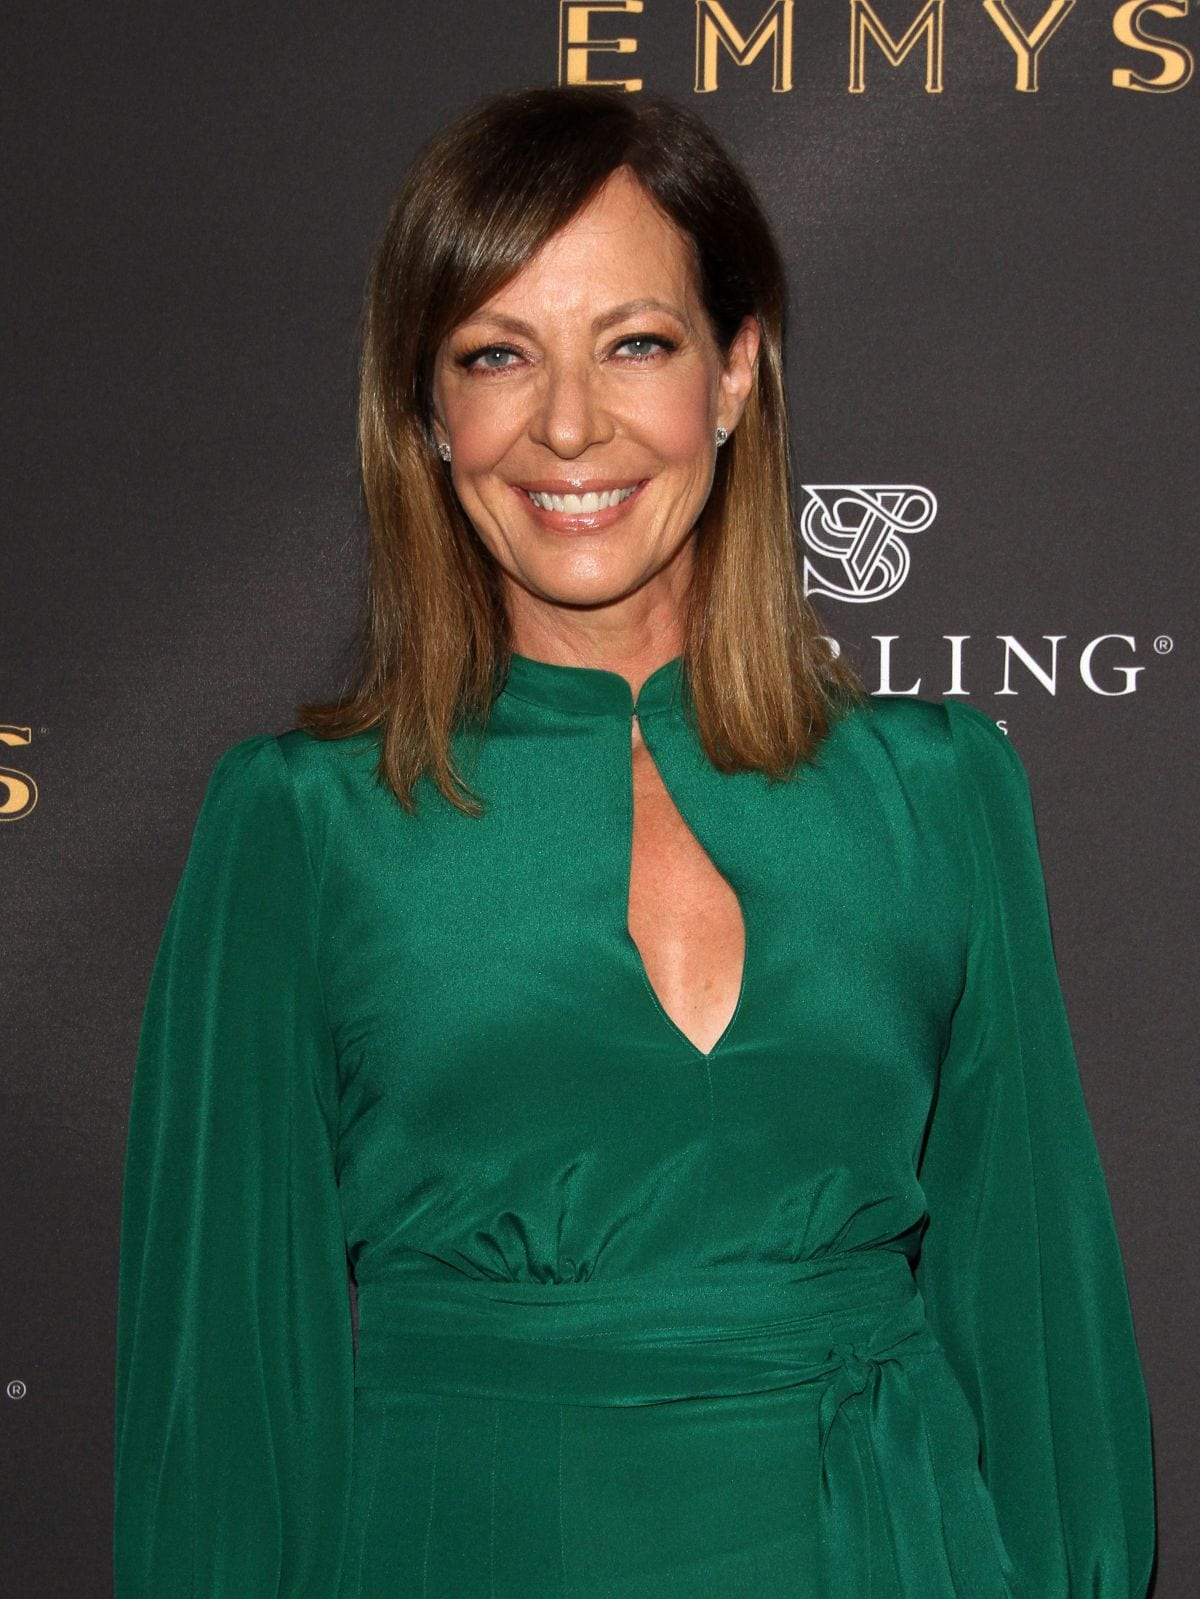 allison-janney-at-emmys-cocktail-reception-in-los-angeles-08-22-2017_1